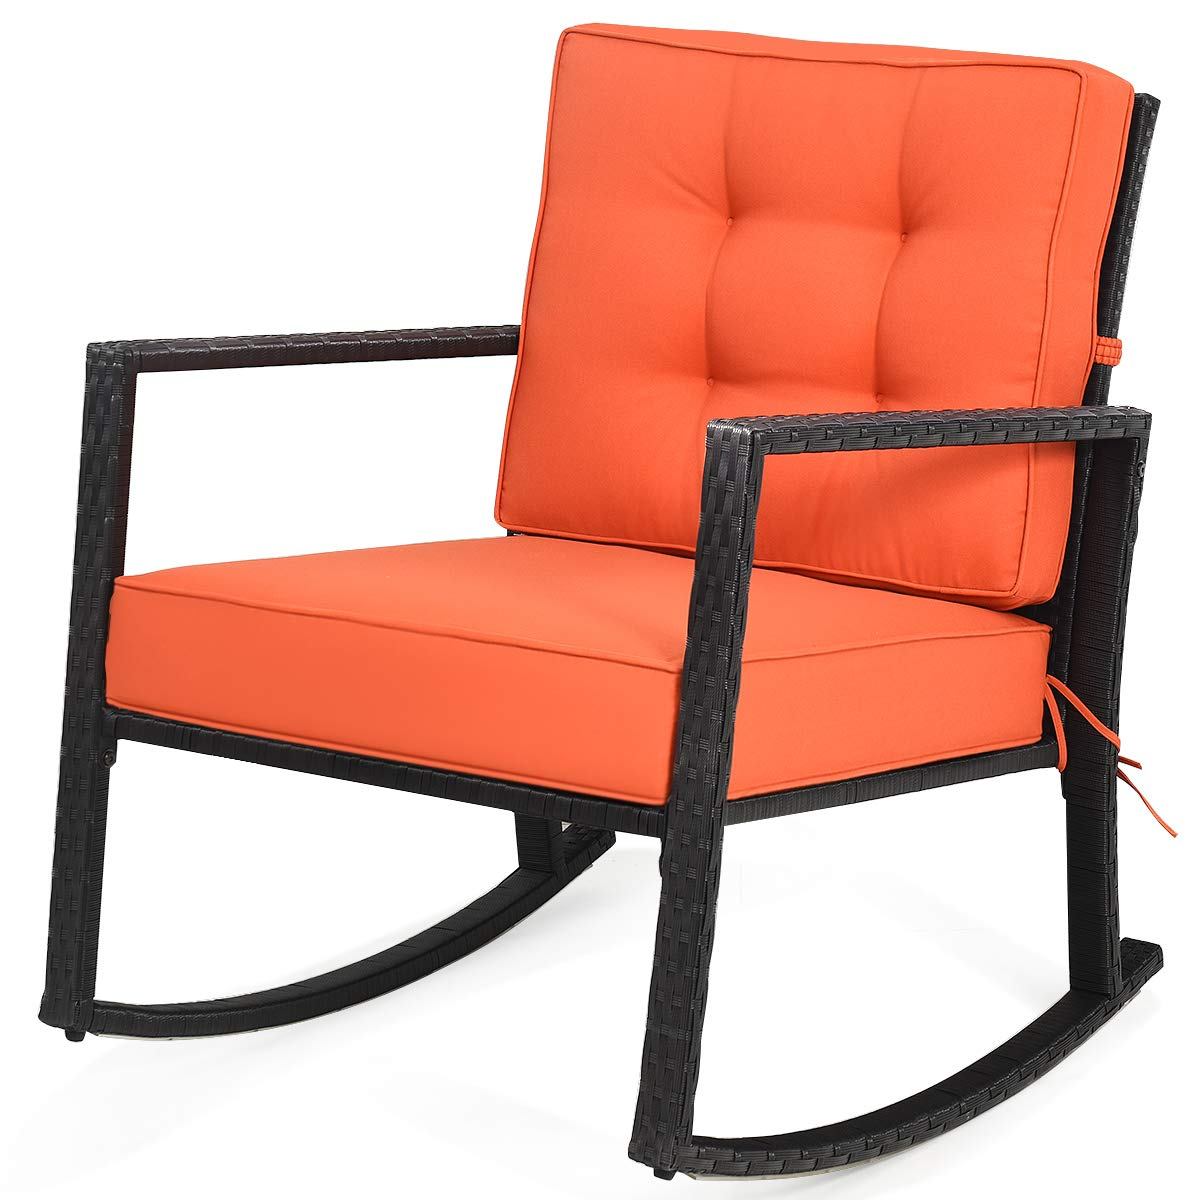 """Poolside Backyard Porch Suitable for Garden Outdoor Glider Rattan Rocker Chair with Heavy-Duty Steel Frame Weight Capacity Up to 360 lbs with 5/"""" Thick Cushion Tangkula Wicker Rocking Chair"""